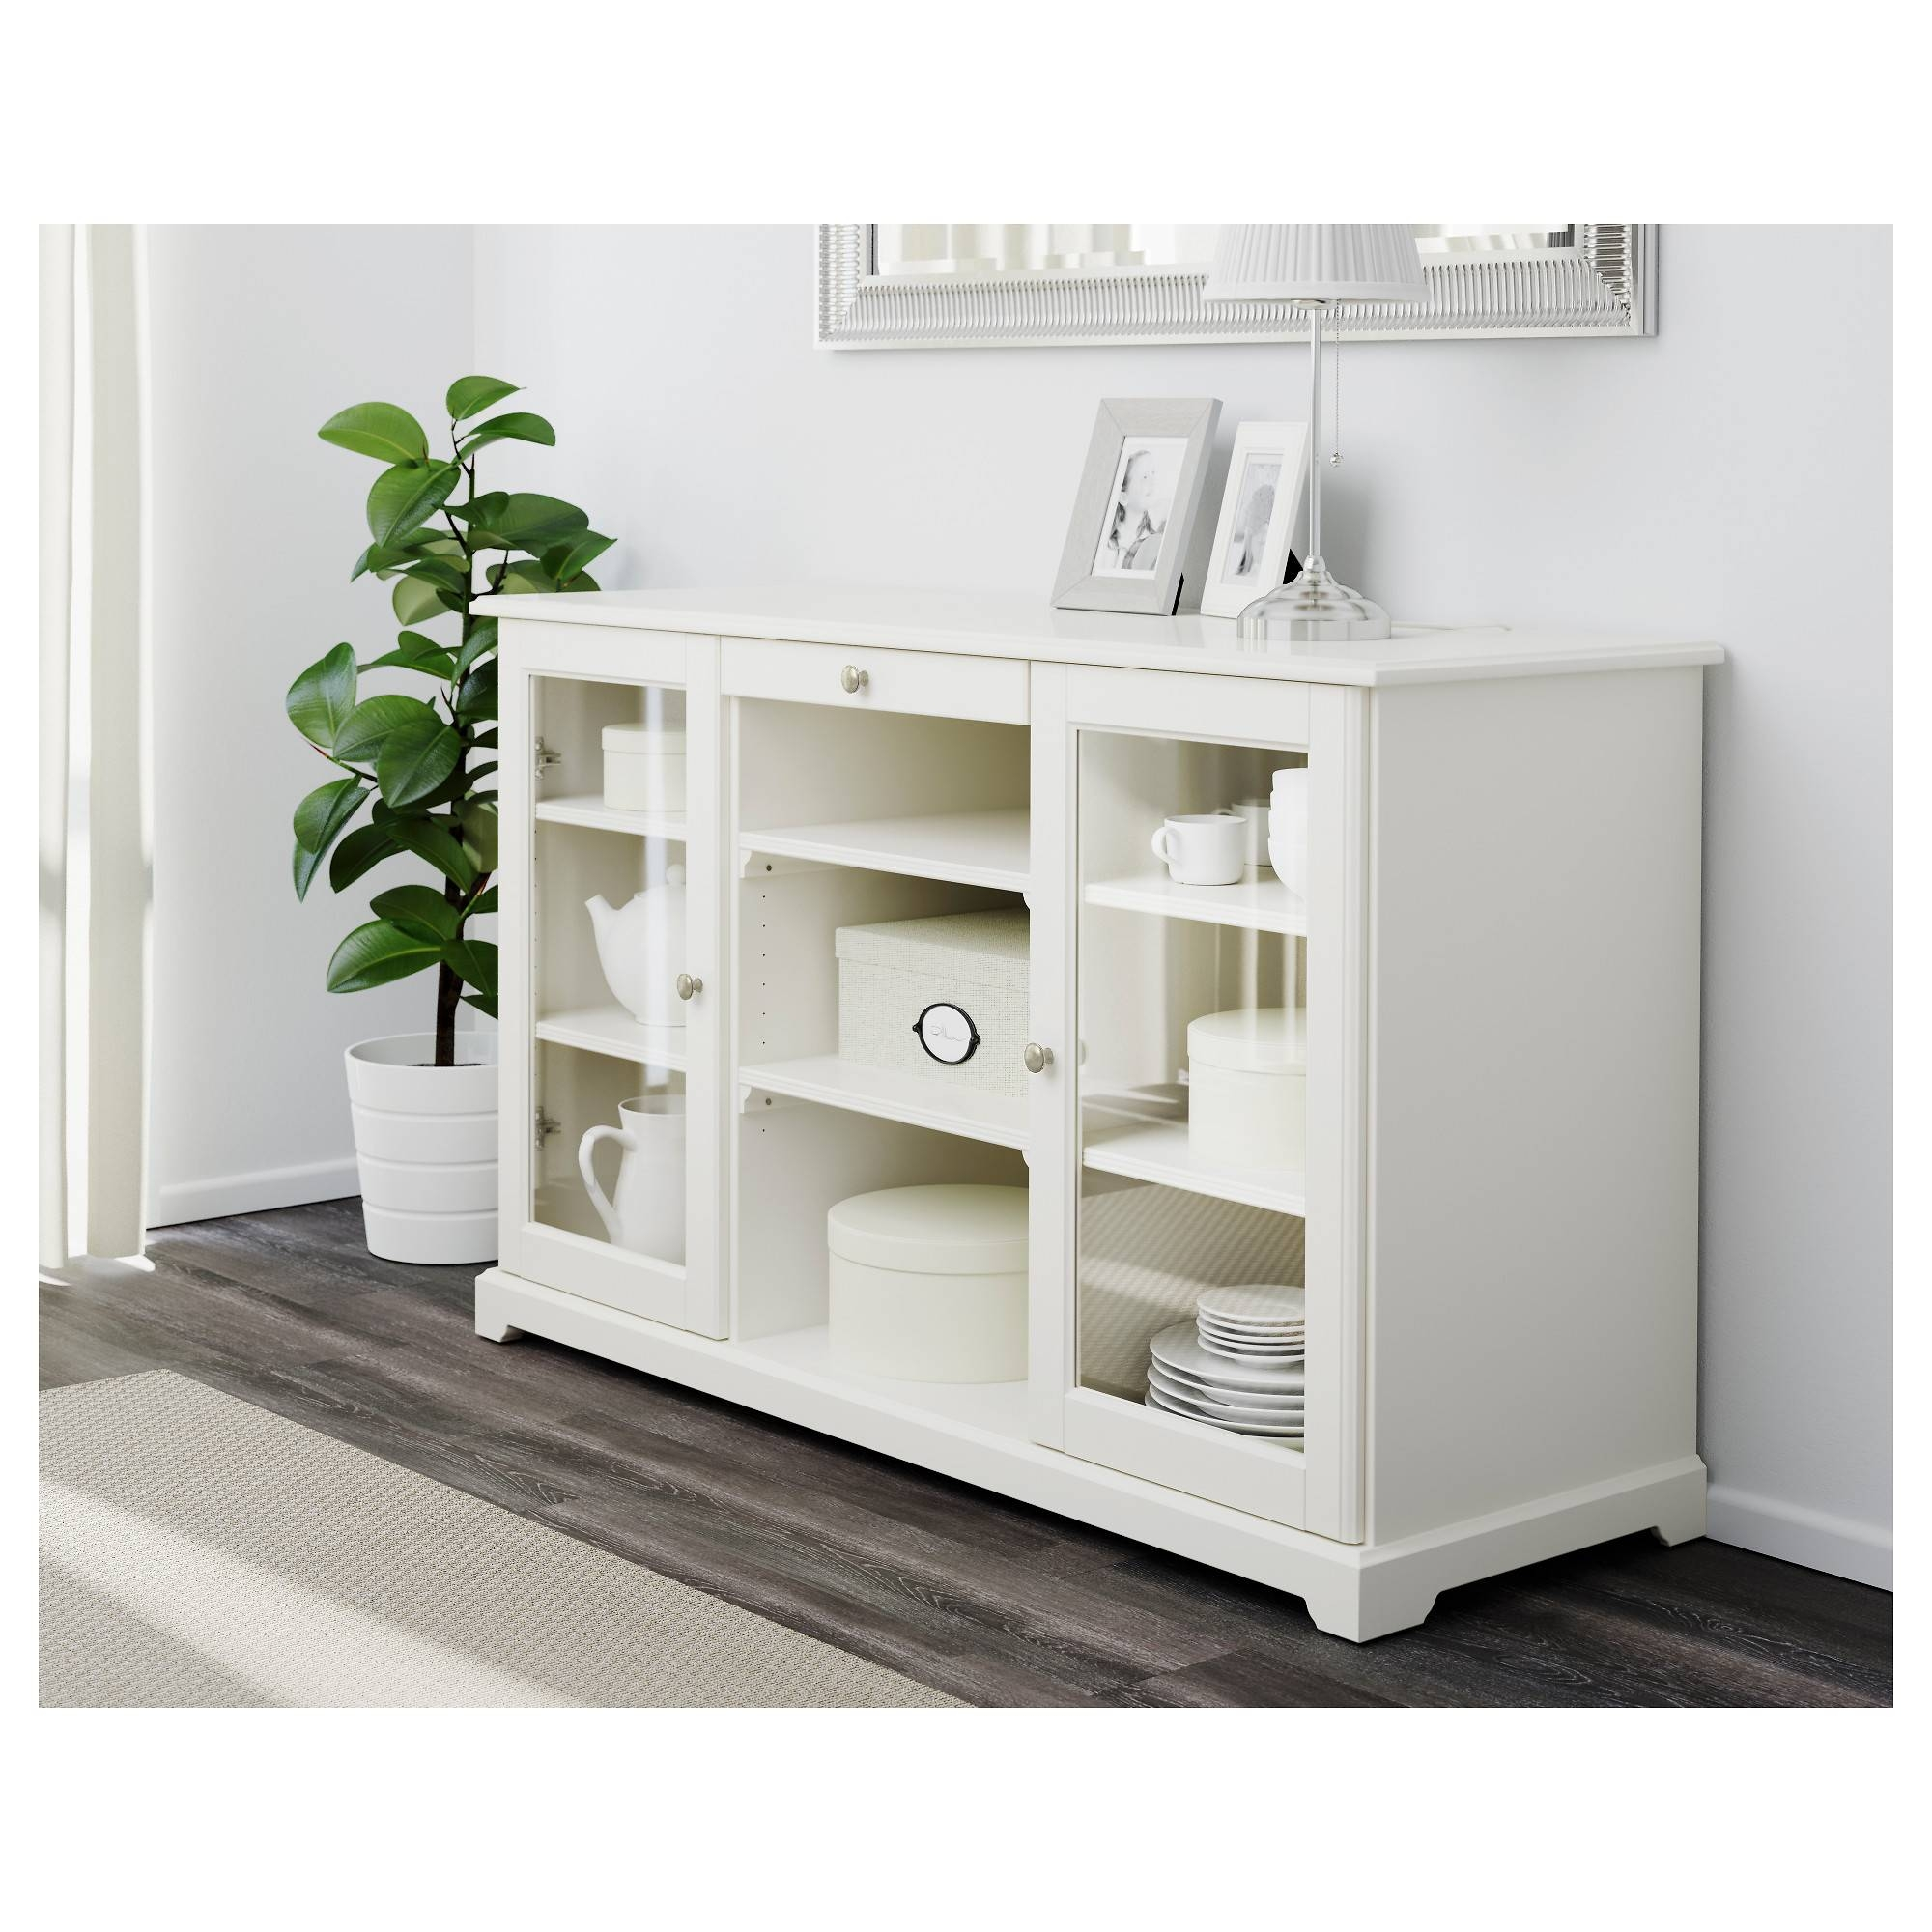 Sideboards. Astounding Small Sideboard: Small-Sideboard-Cheap pertaining to Large White Sideboards (Image 27 of 30)